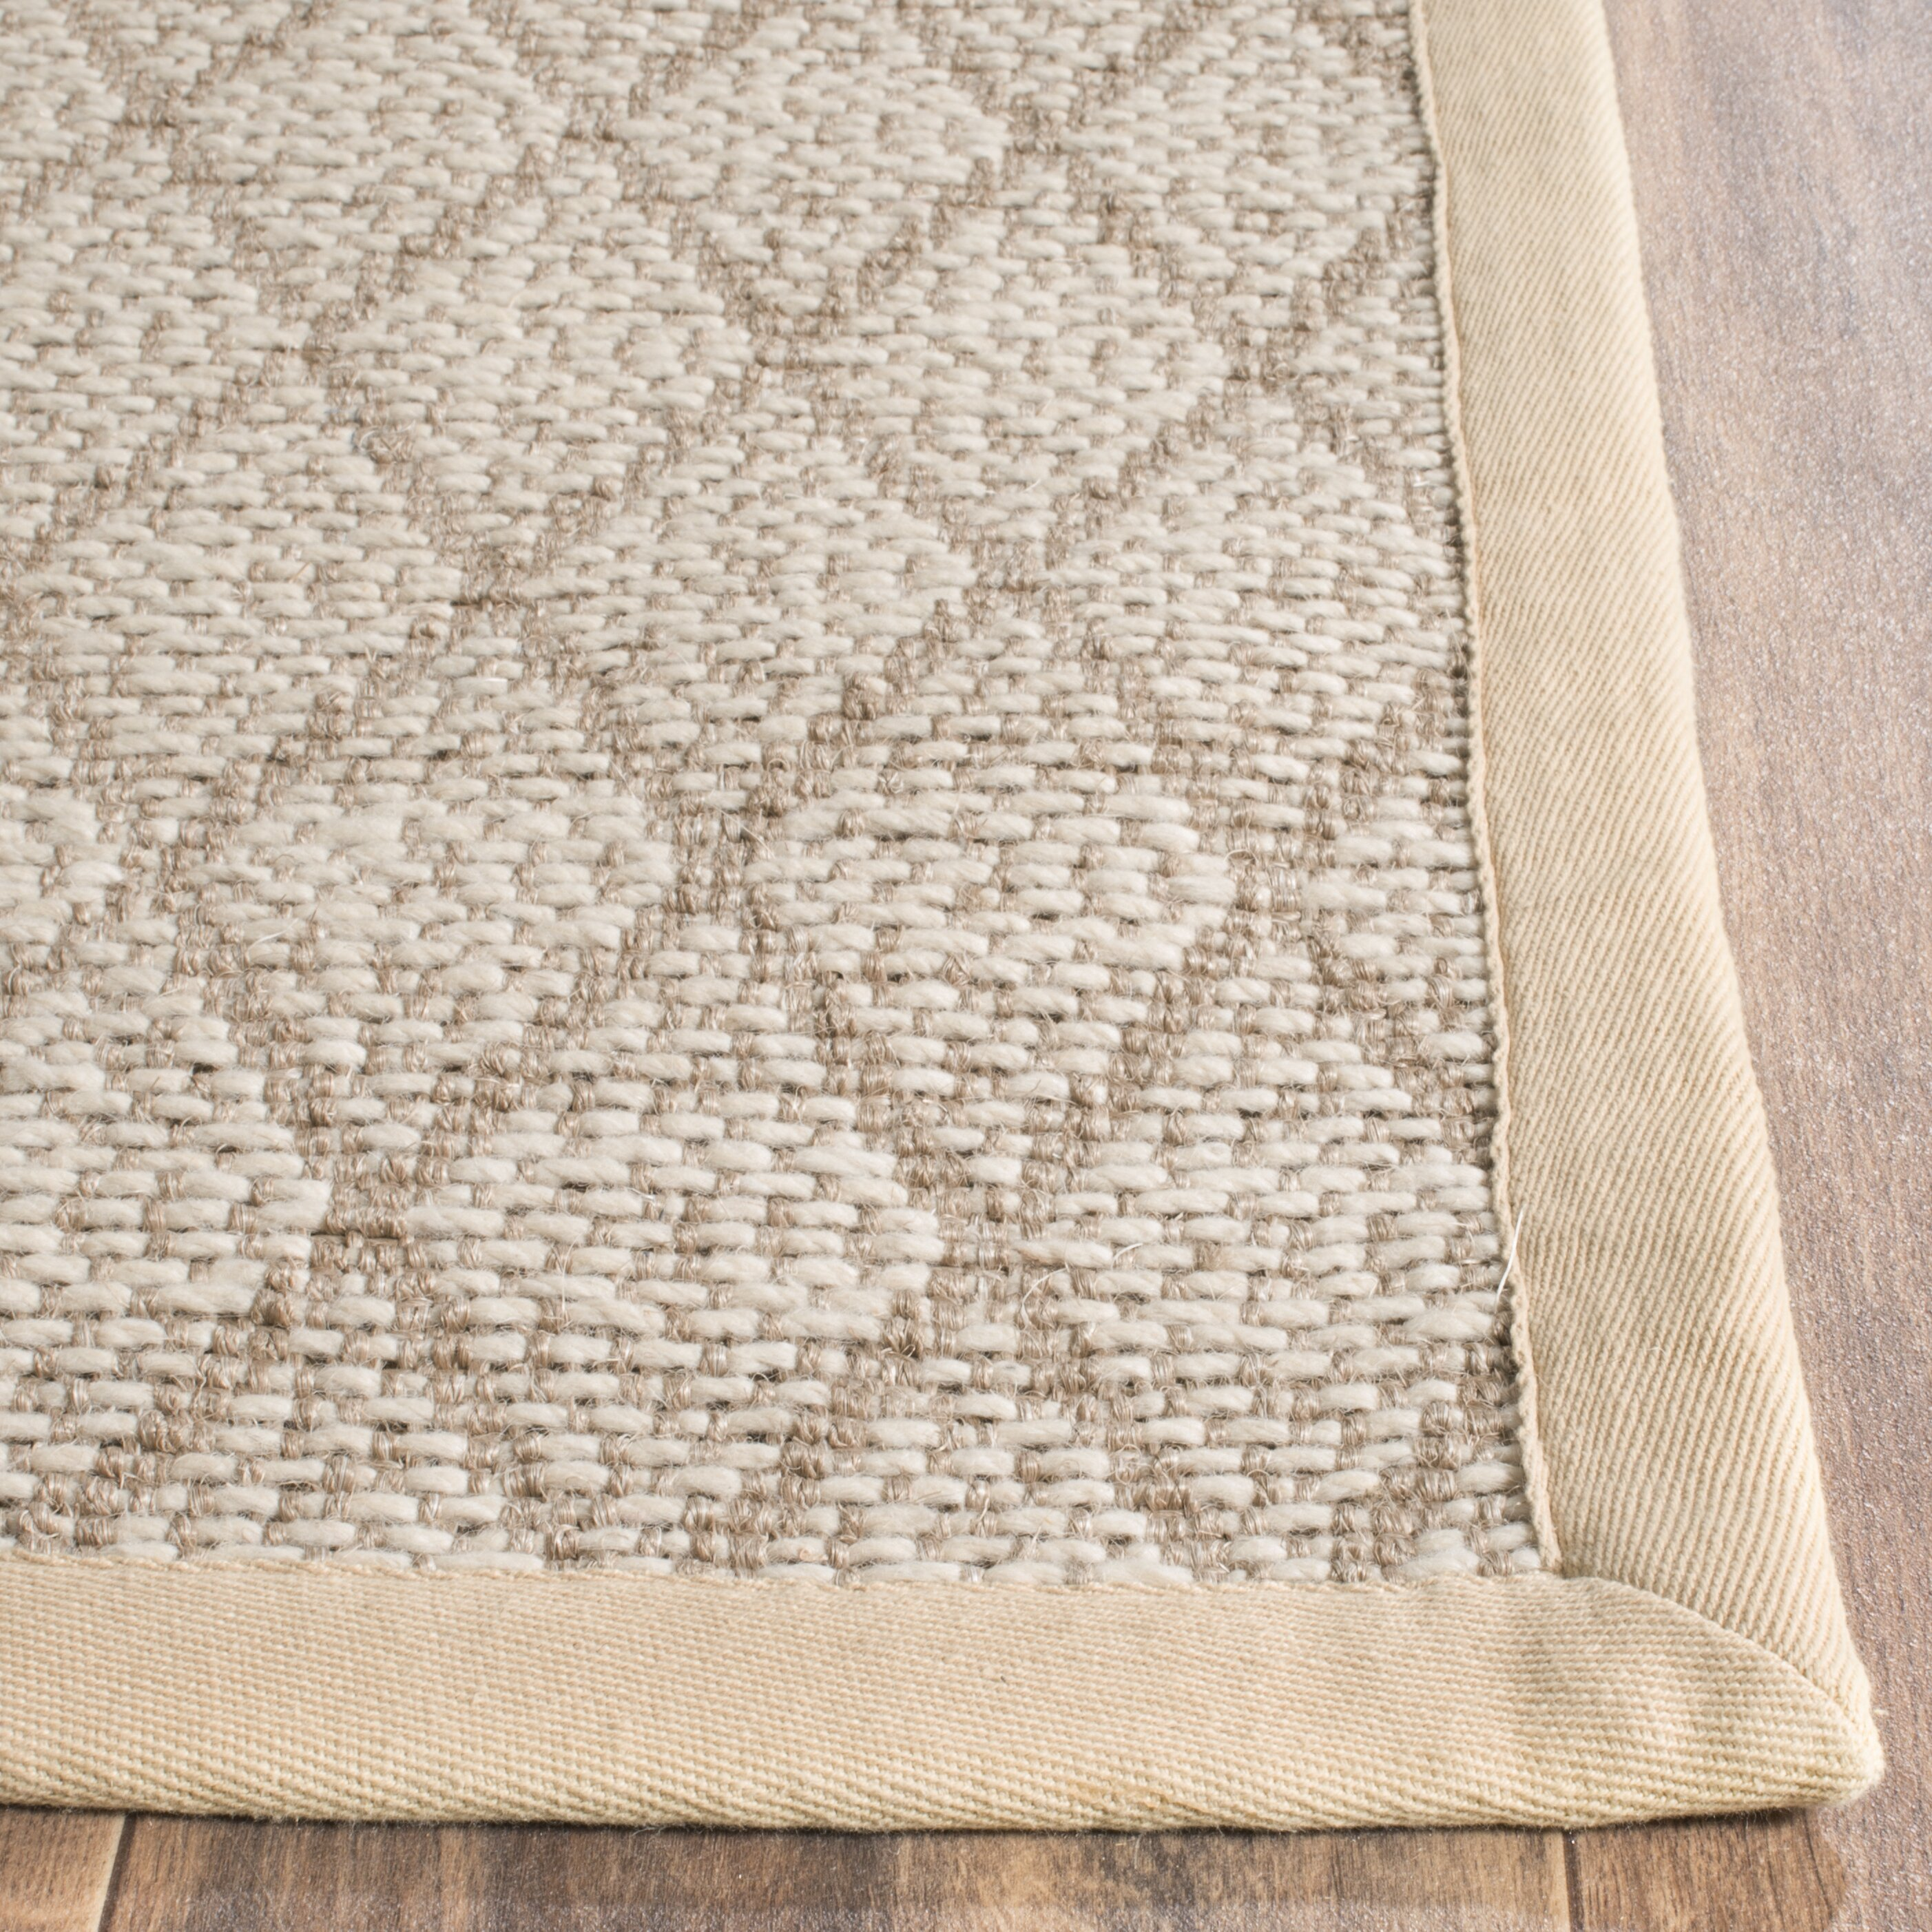 Darby Home Co Natural Fiber Area Rug & Reviews